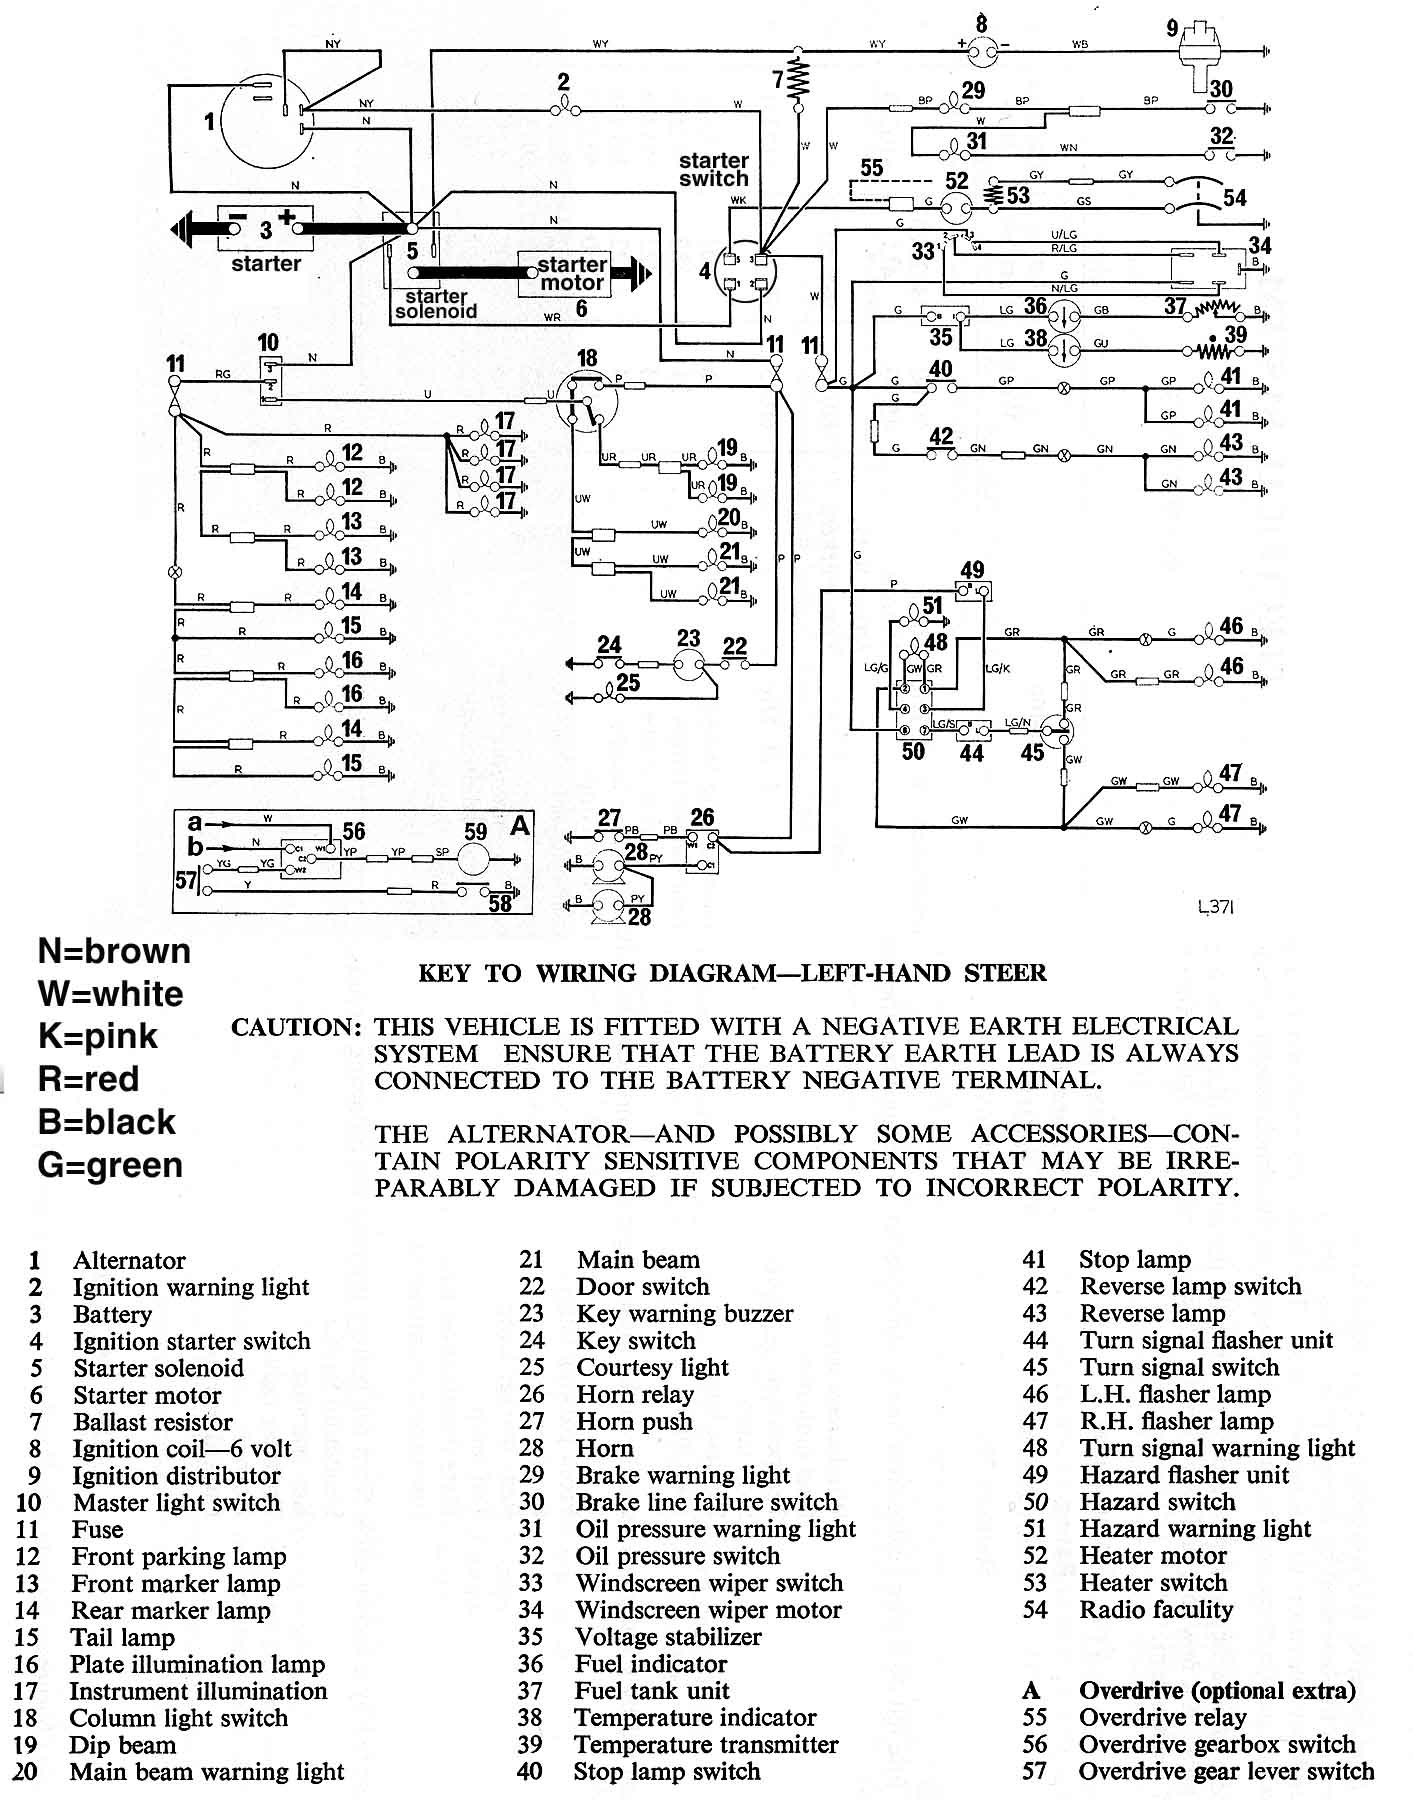 1974 Spitfire 1500 Wire Diagram : Spitfire & GT6 Forum